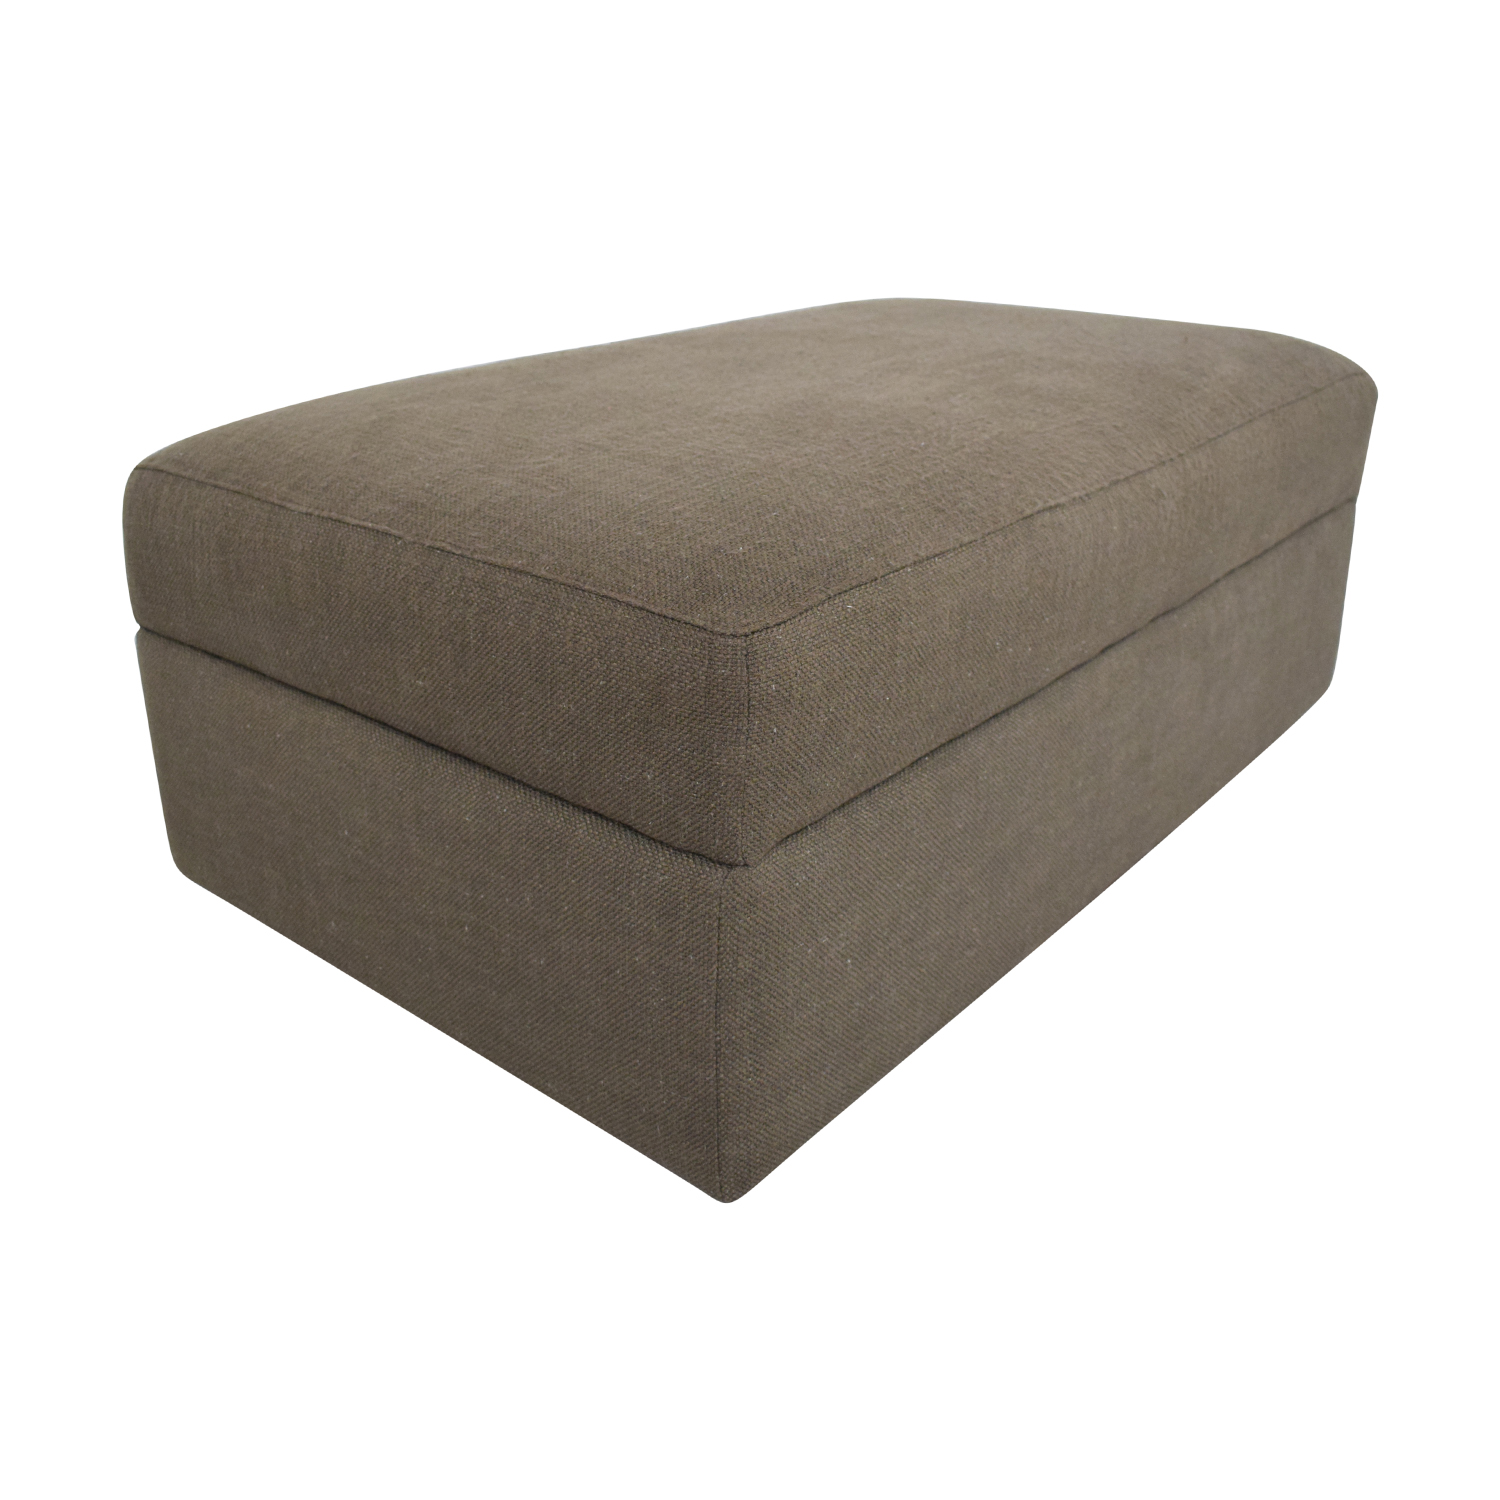 buy Crate & Barrel Storage Ottoman Crate & Barrel Ottomans